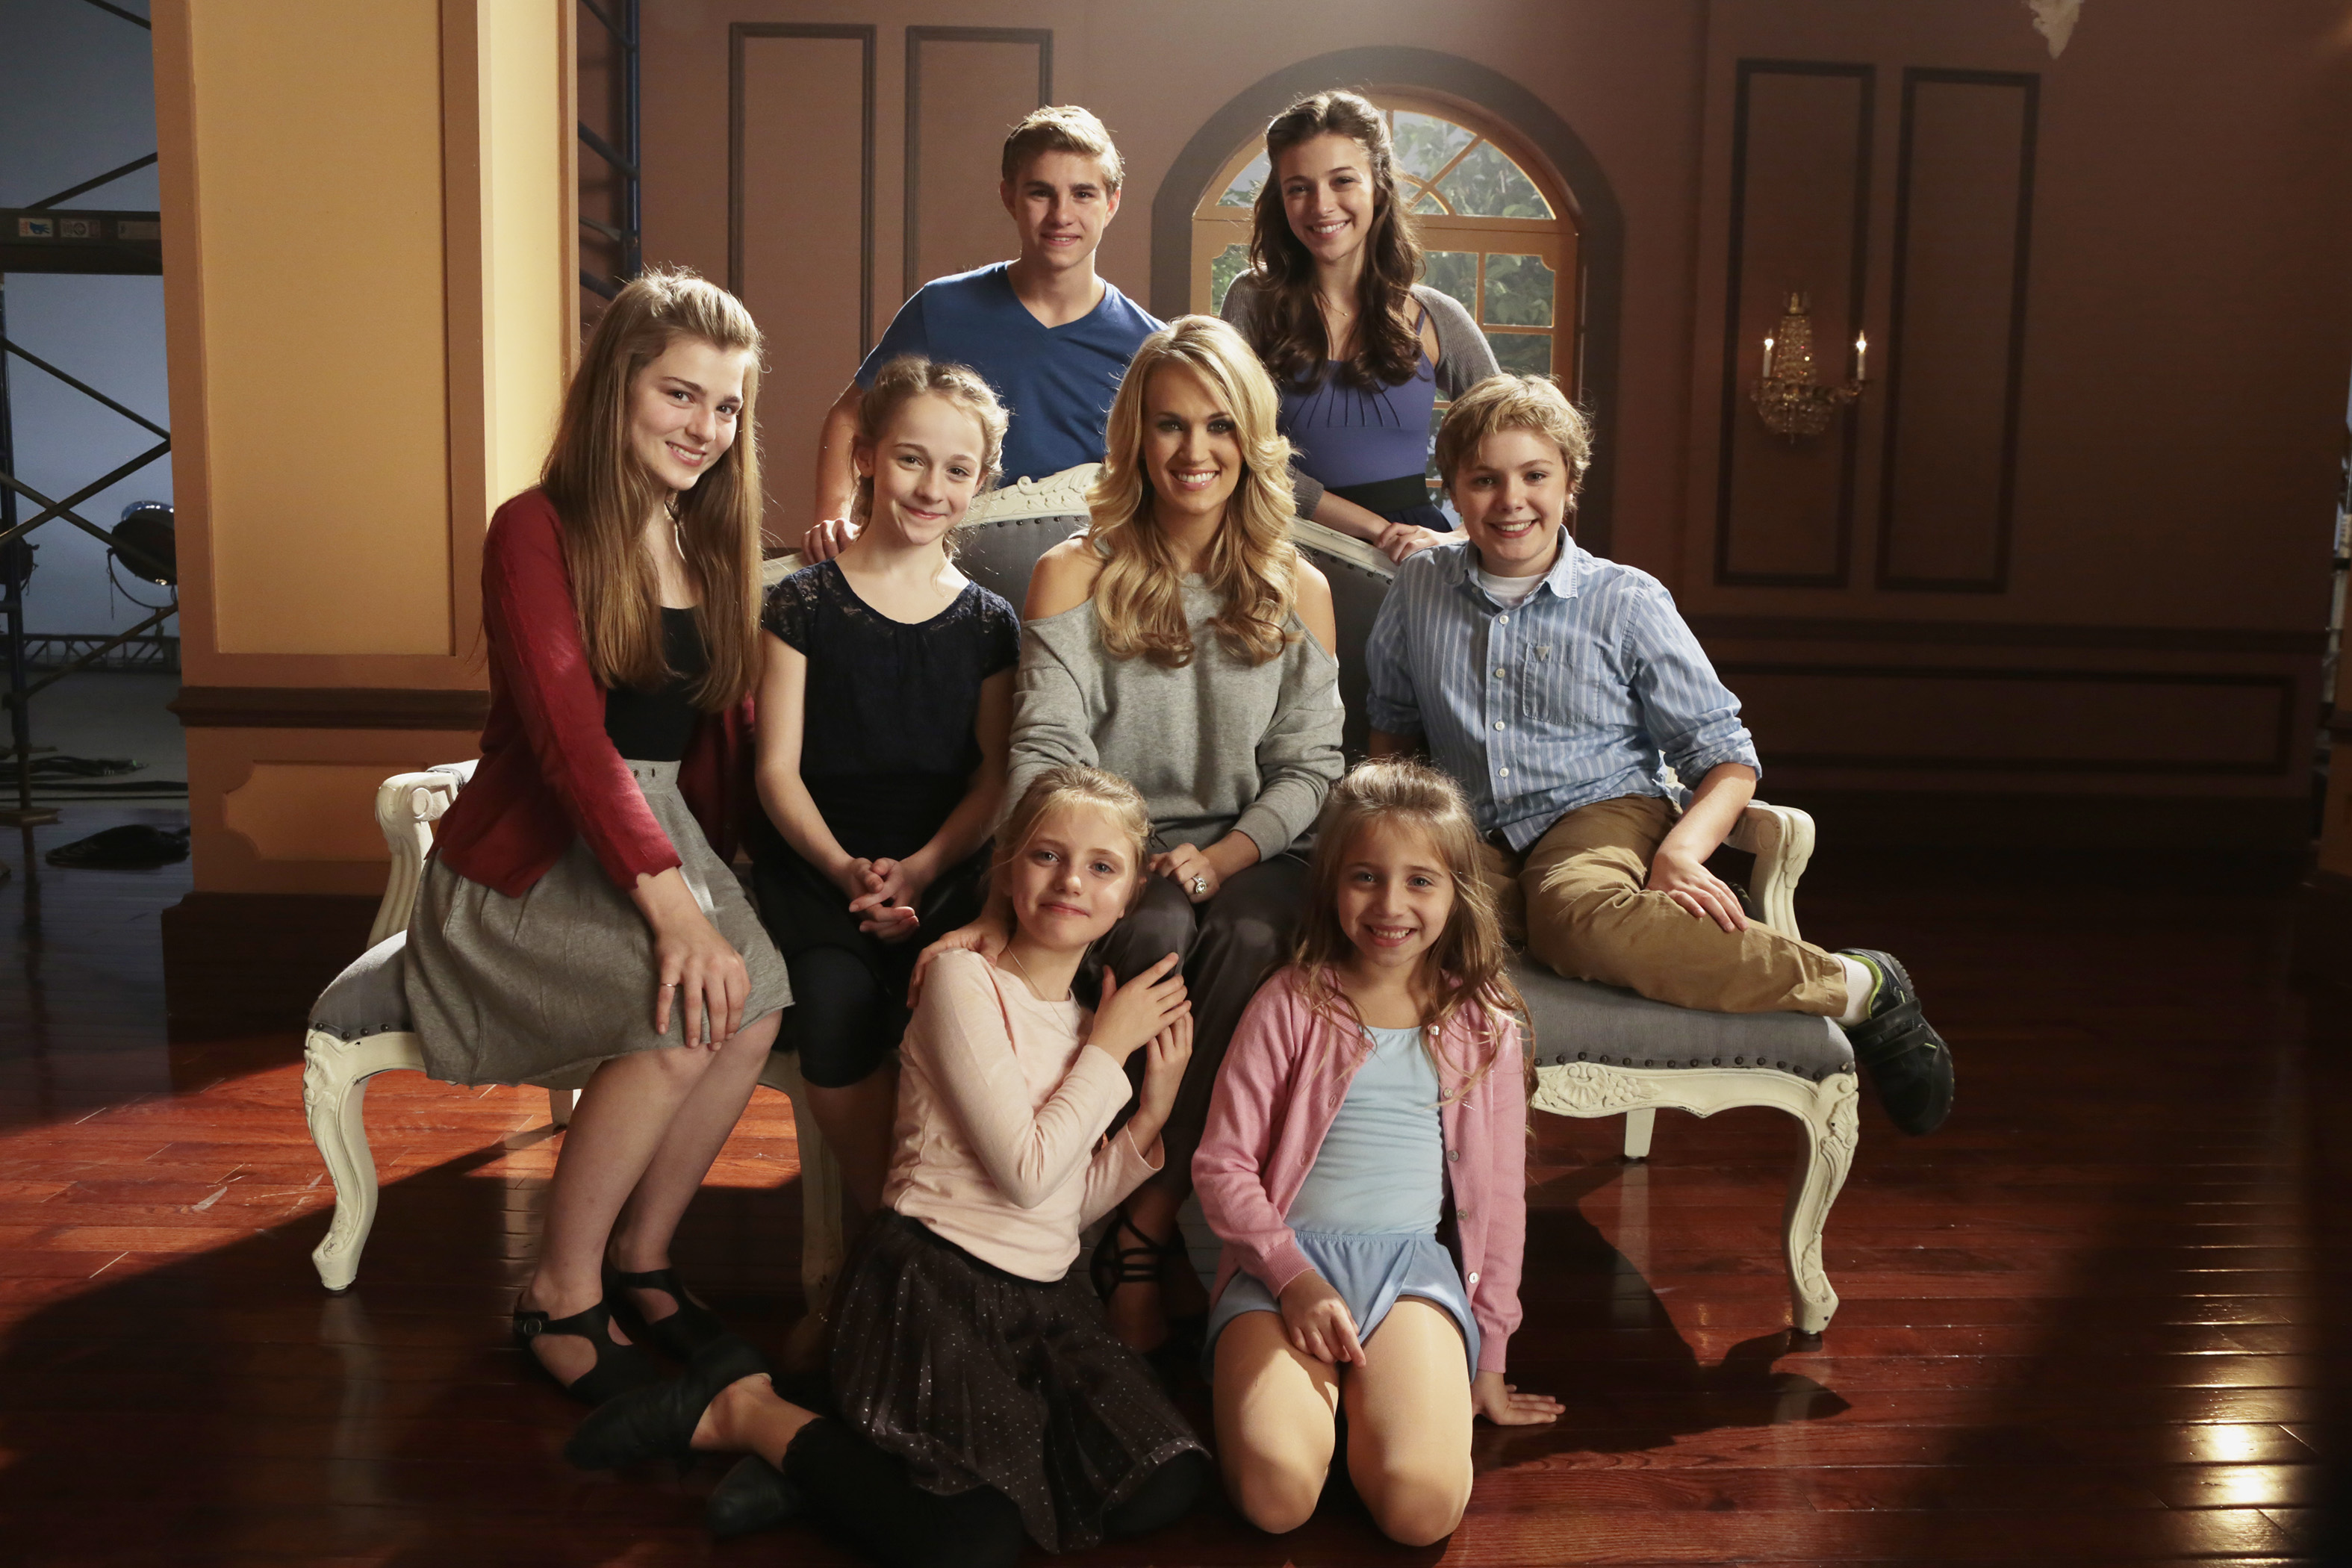 Carrie Underwood and the von Trapp Kids